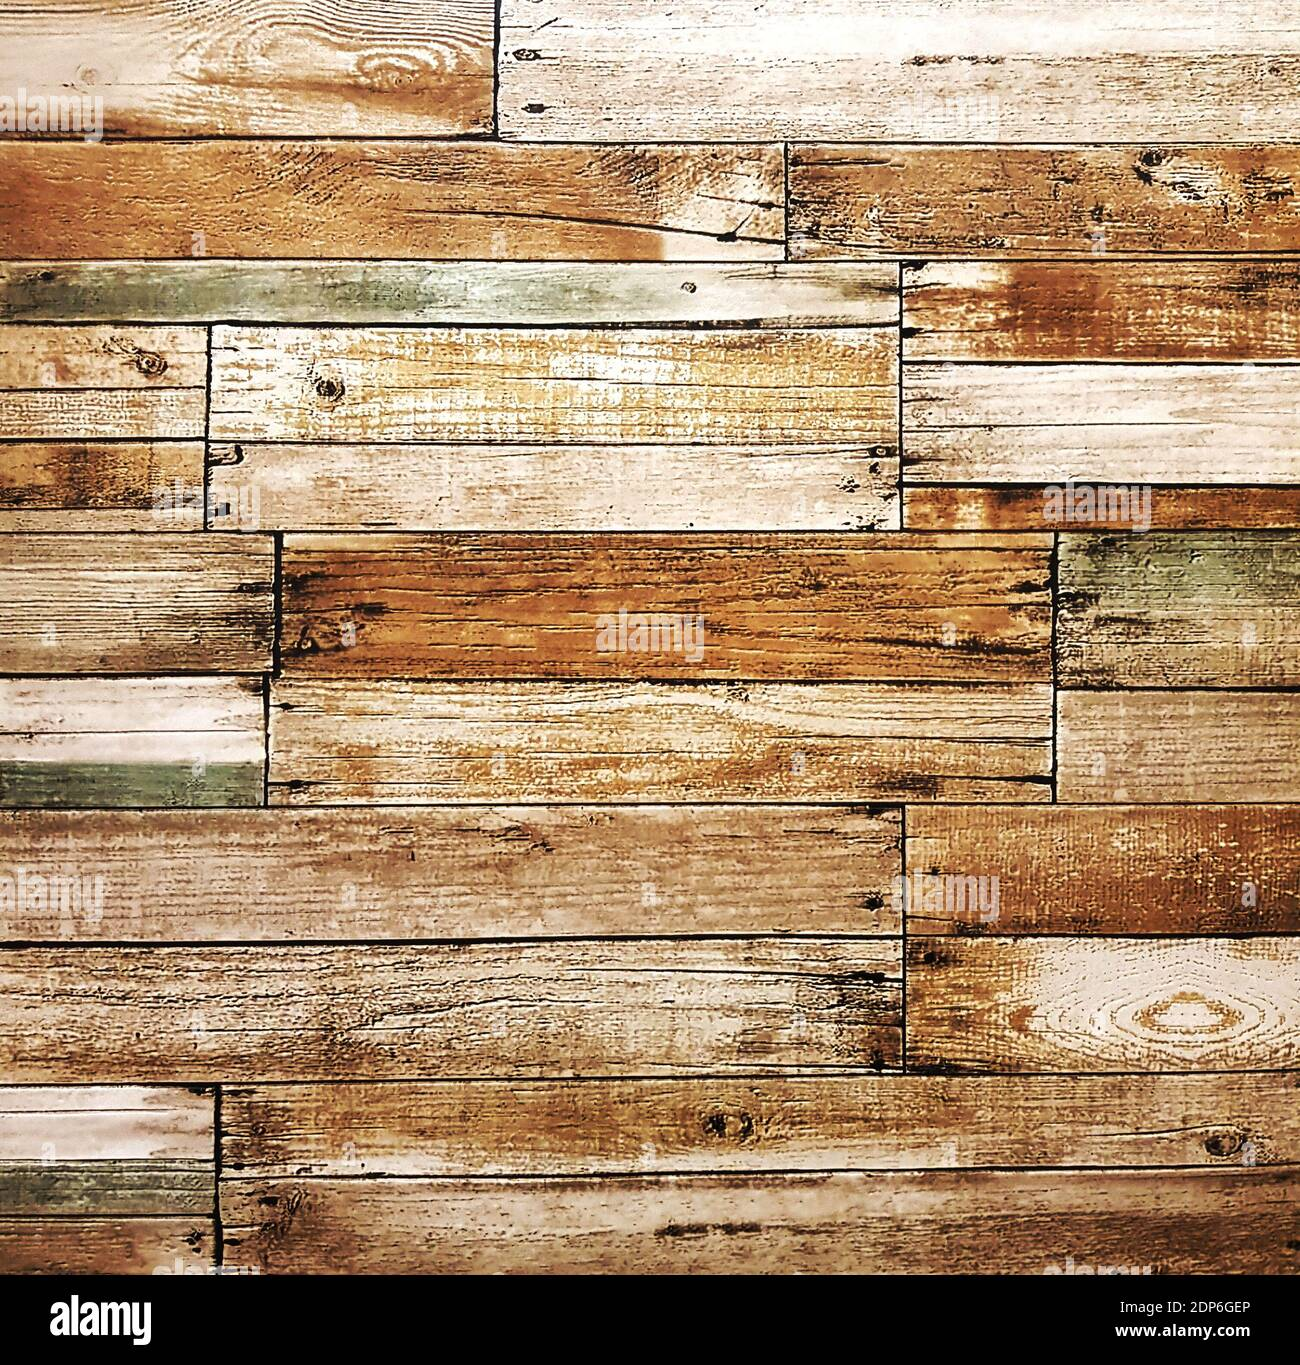 Wooden Ceramic Tile Texture High Resolution Stock Photography And Images Alamy